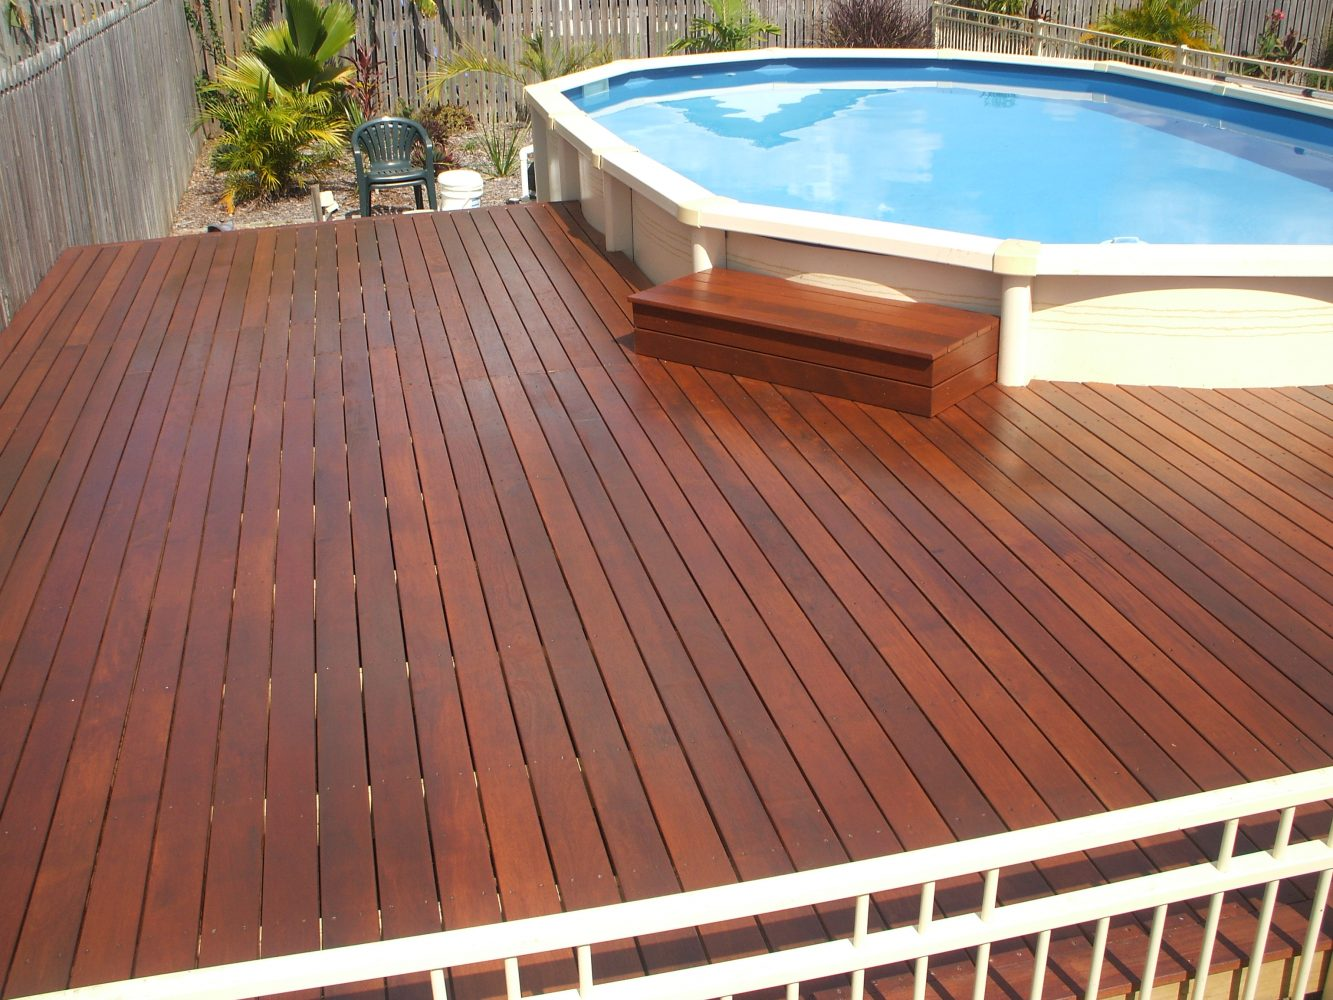 Pool with timber deck